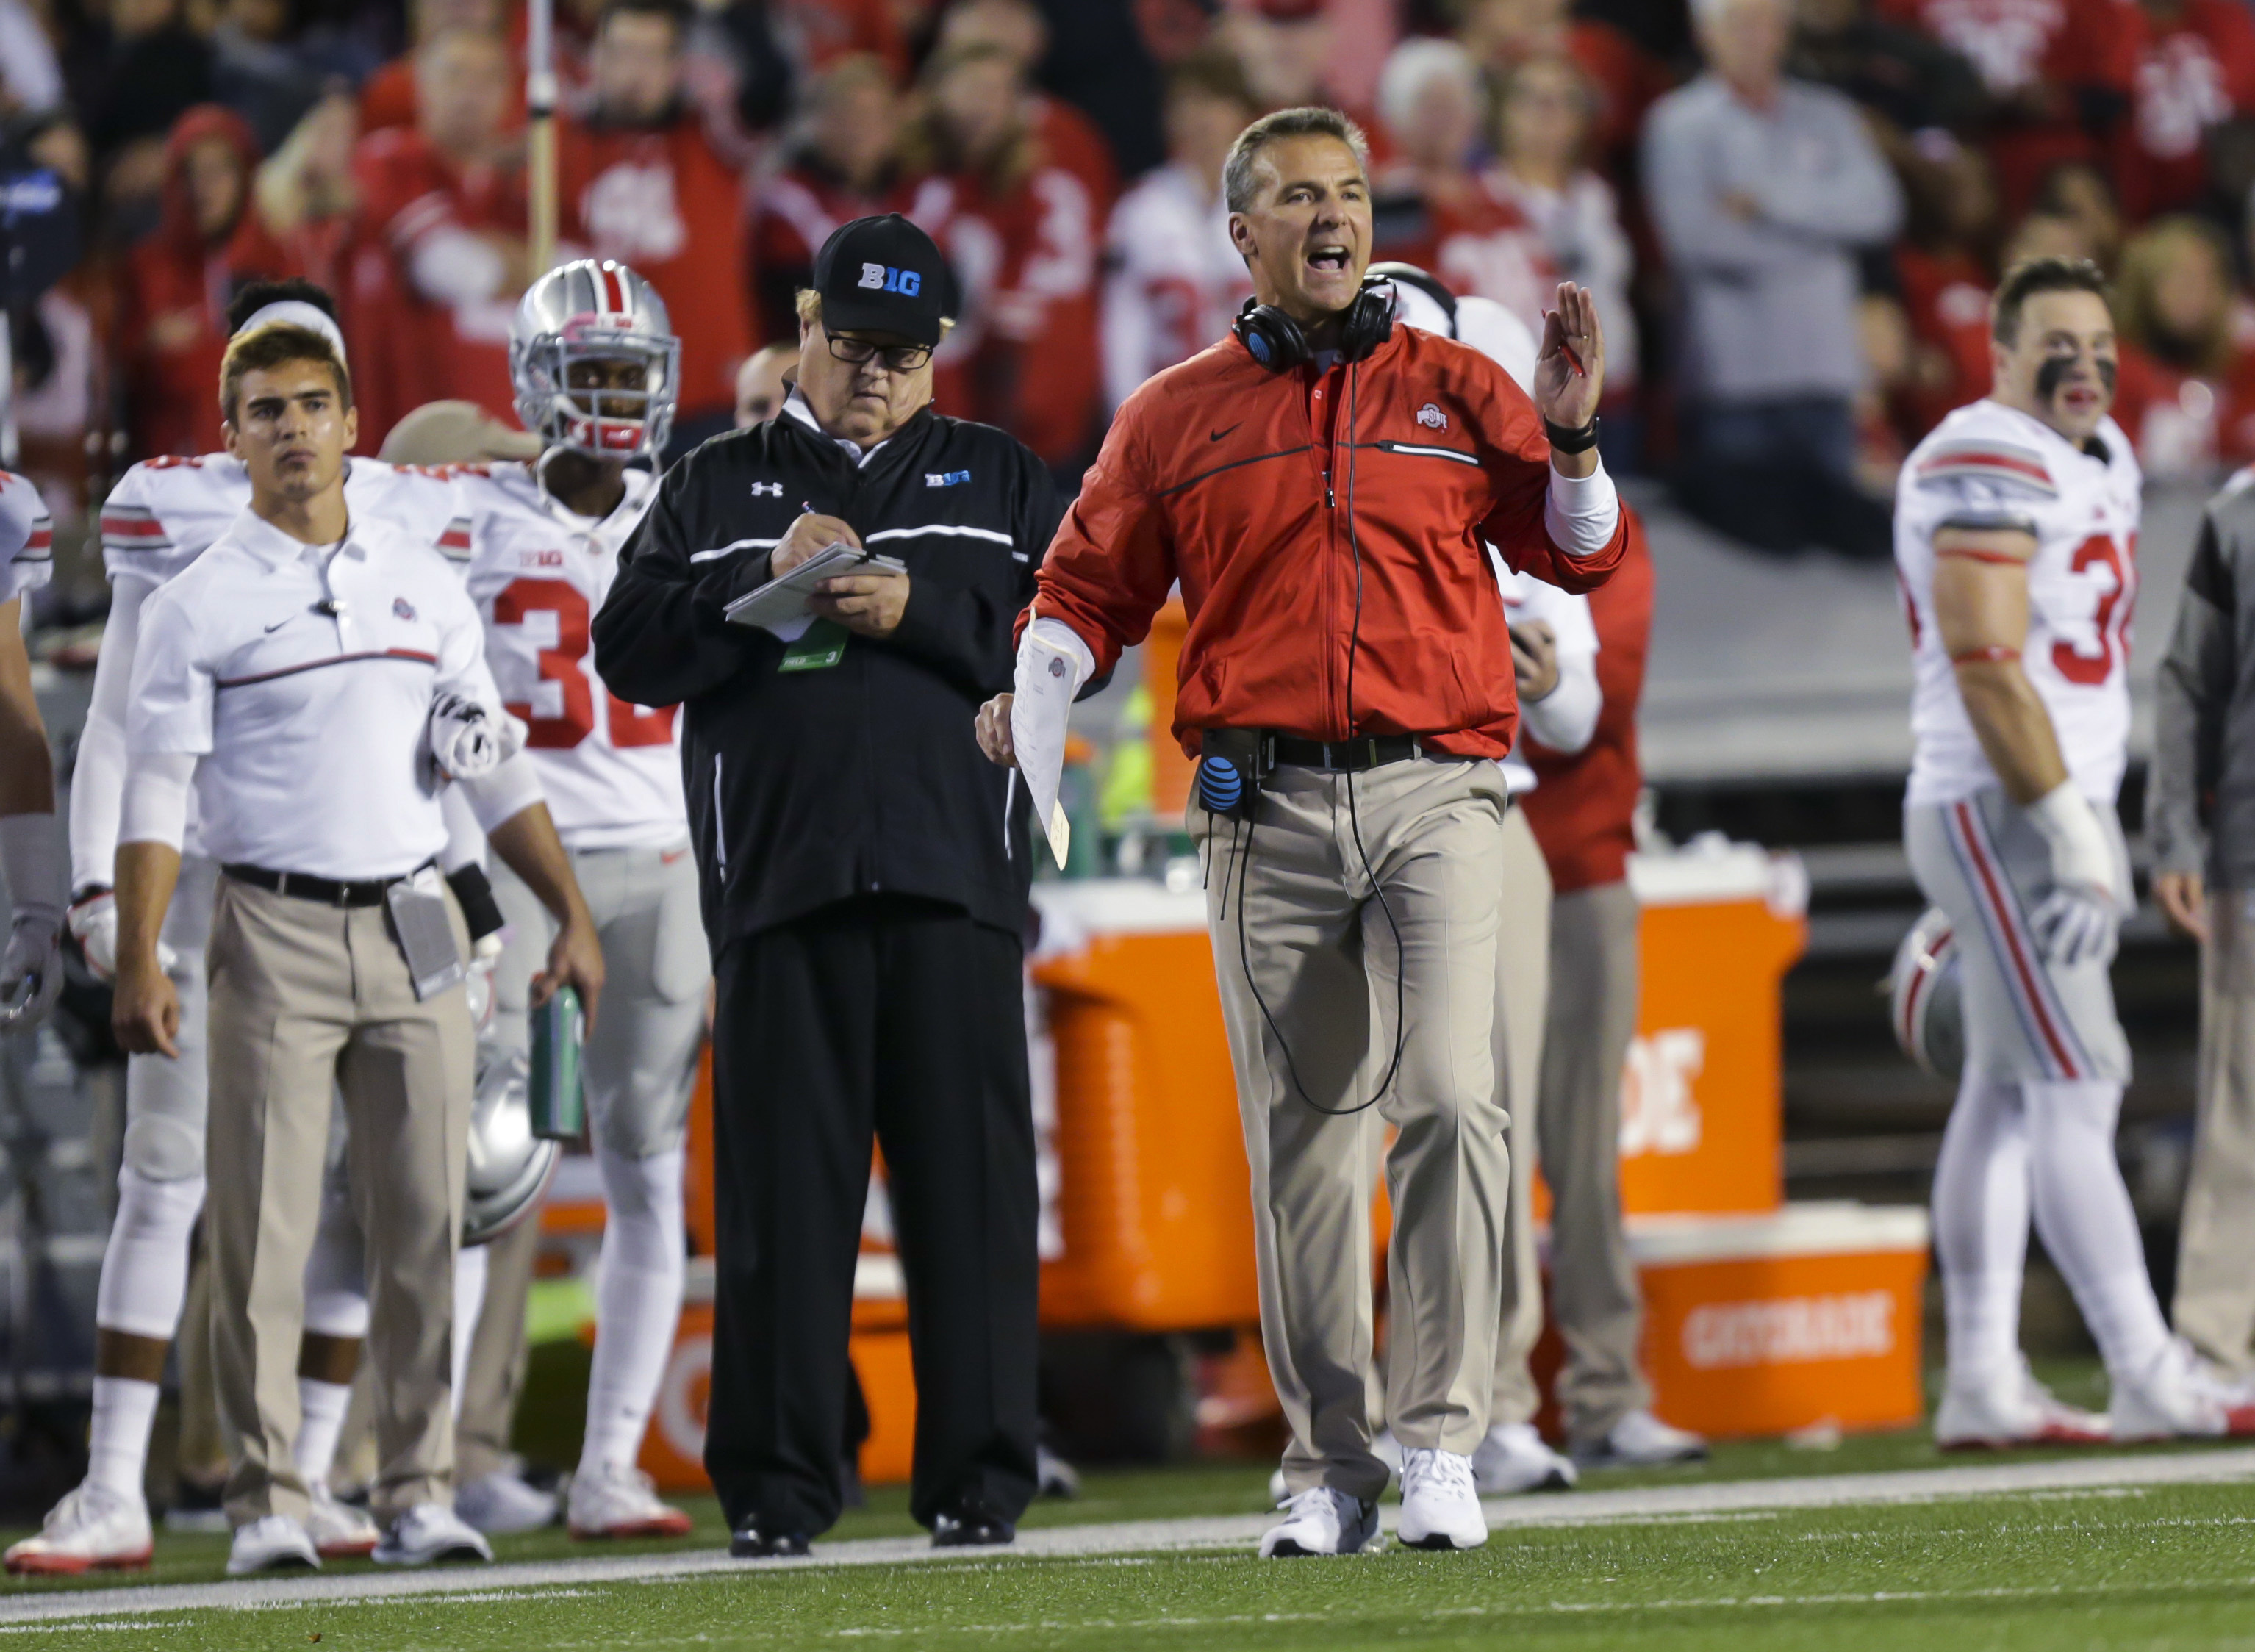 FILE - In this  Saturday, Oct. 15, 2016, file photo, Ohio State coach Urban Meyer disputes a call during the first half of the team's NCAA college football game against Wisconsin in Madison, Wis. After blowing away opponents in the first four games, Ohio